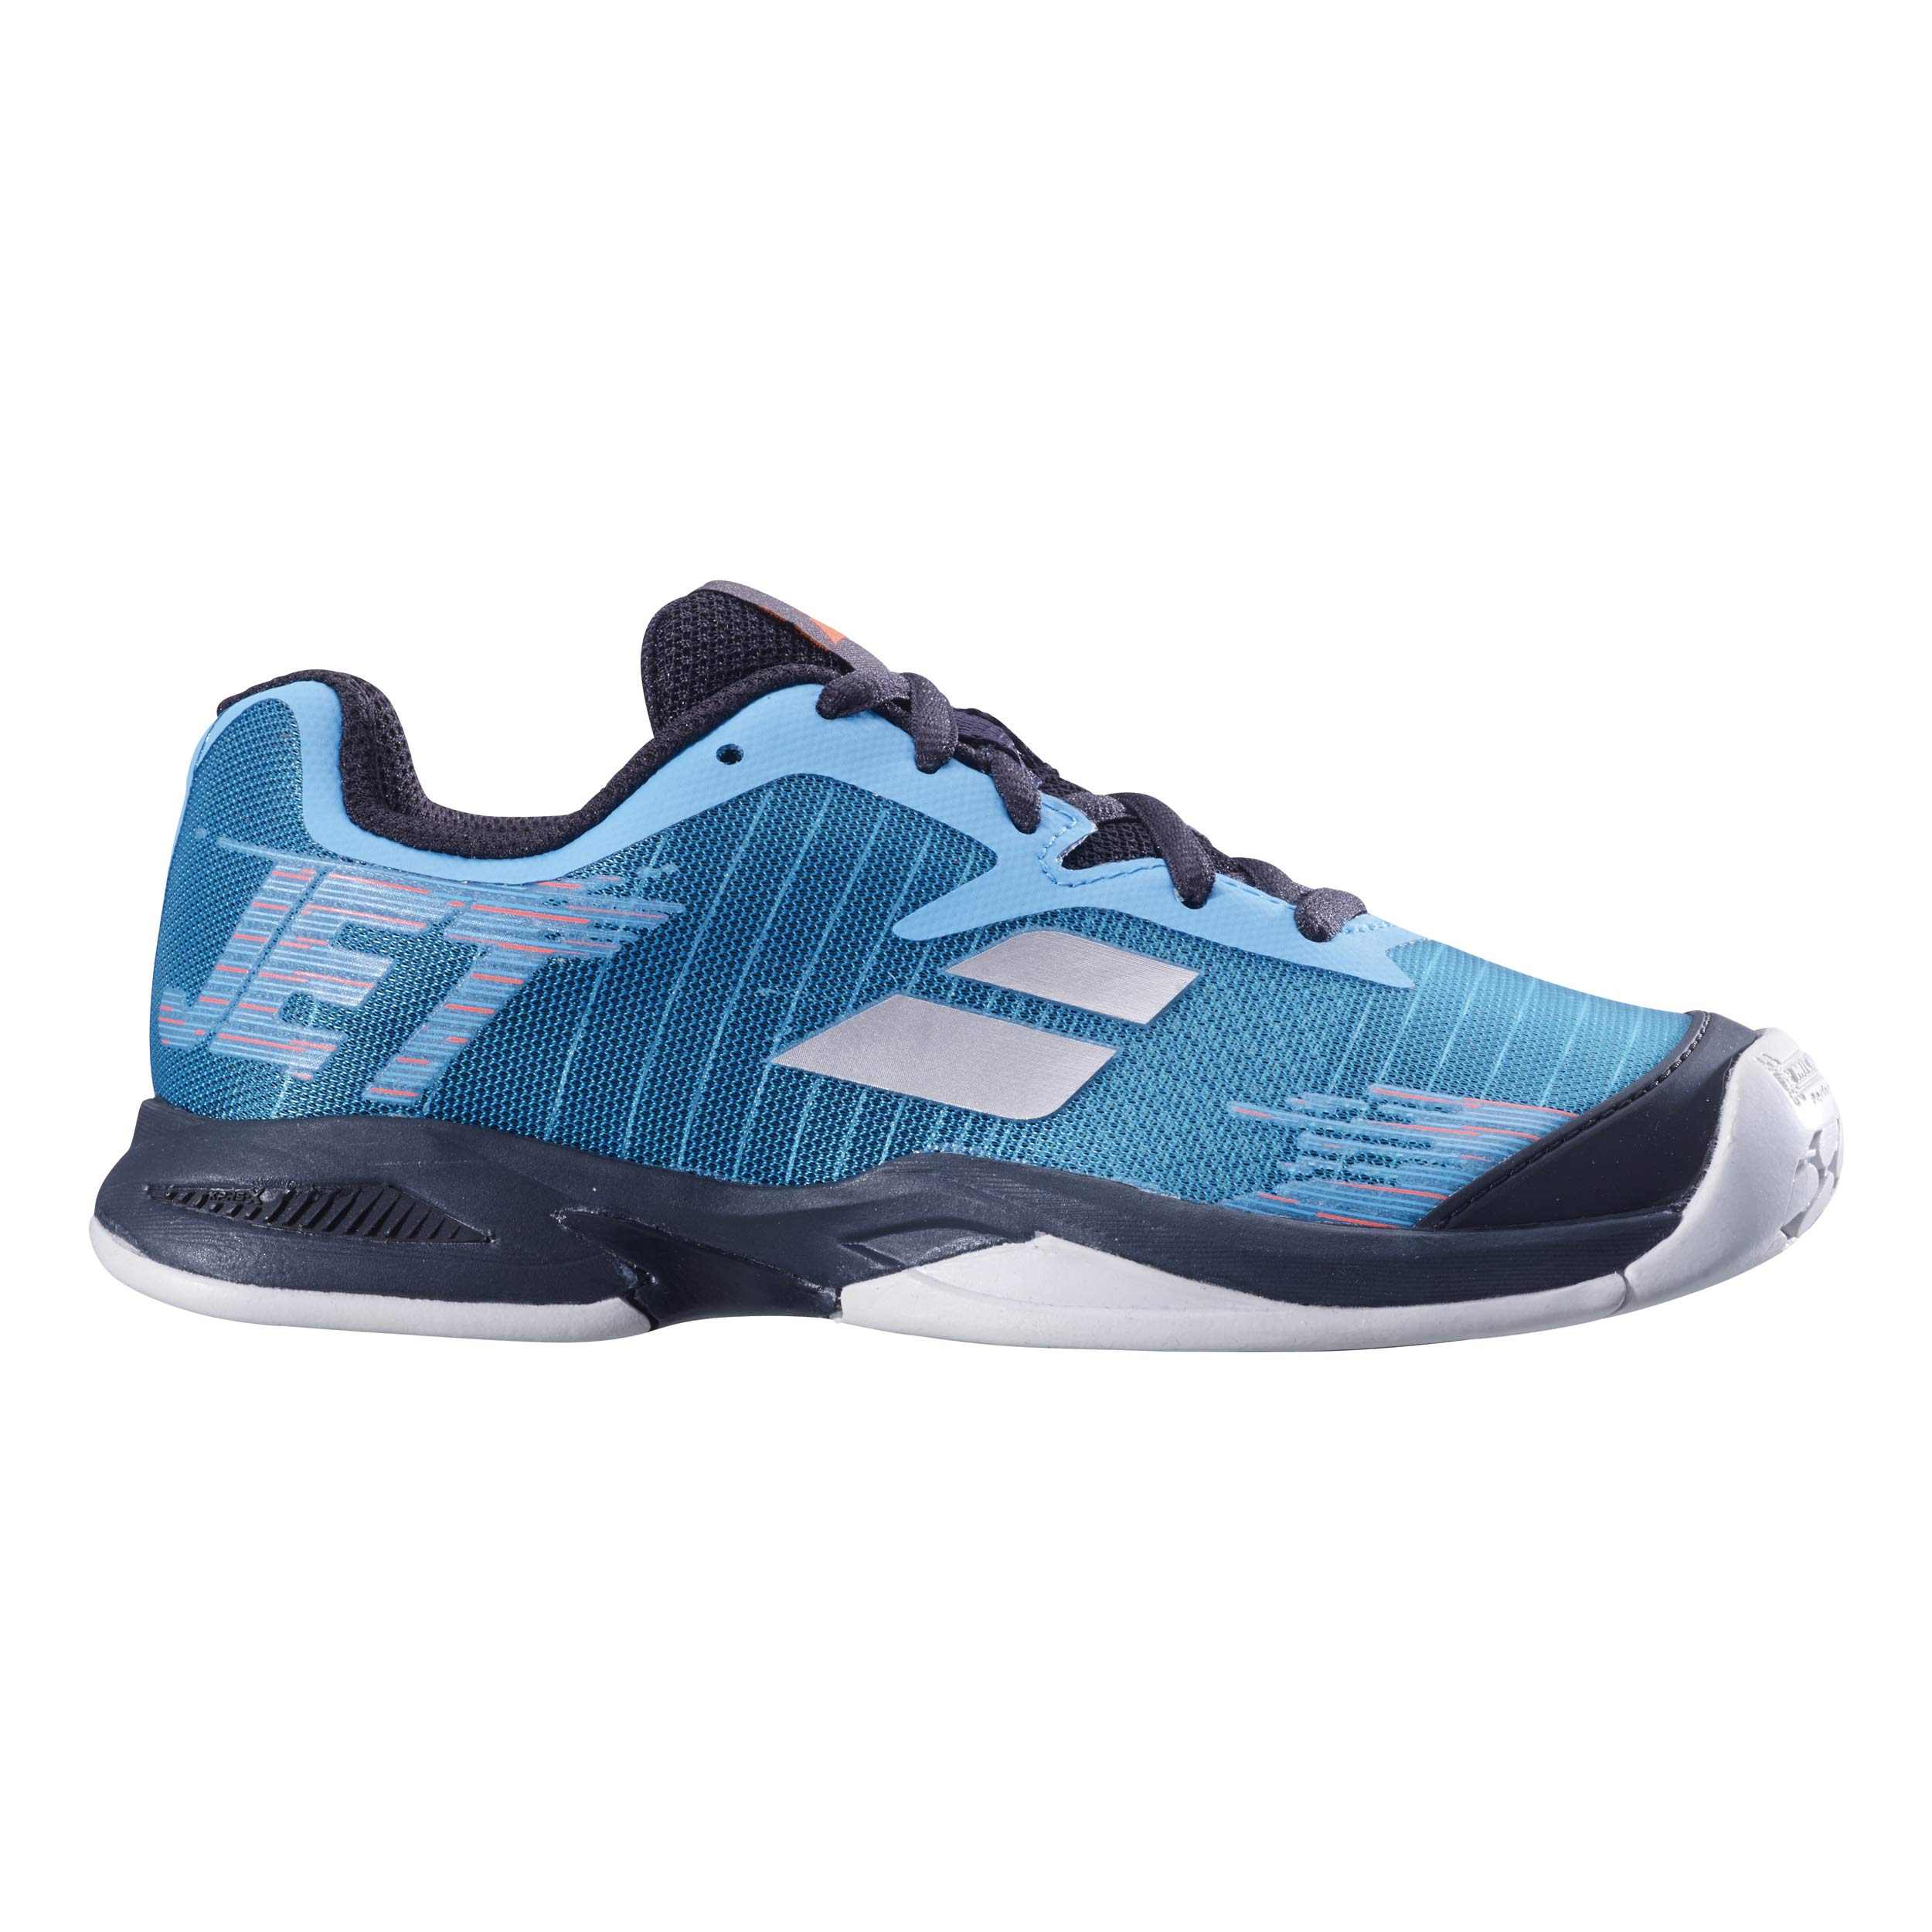 Babolat Juniors` Jet All Court Tennis Shoes Dark Blue and Black (1)